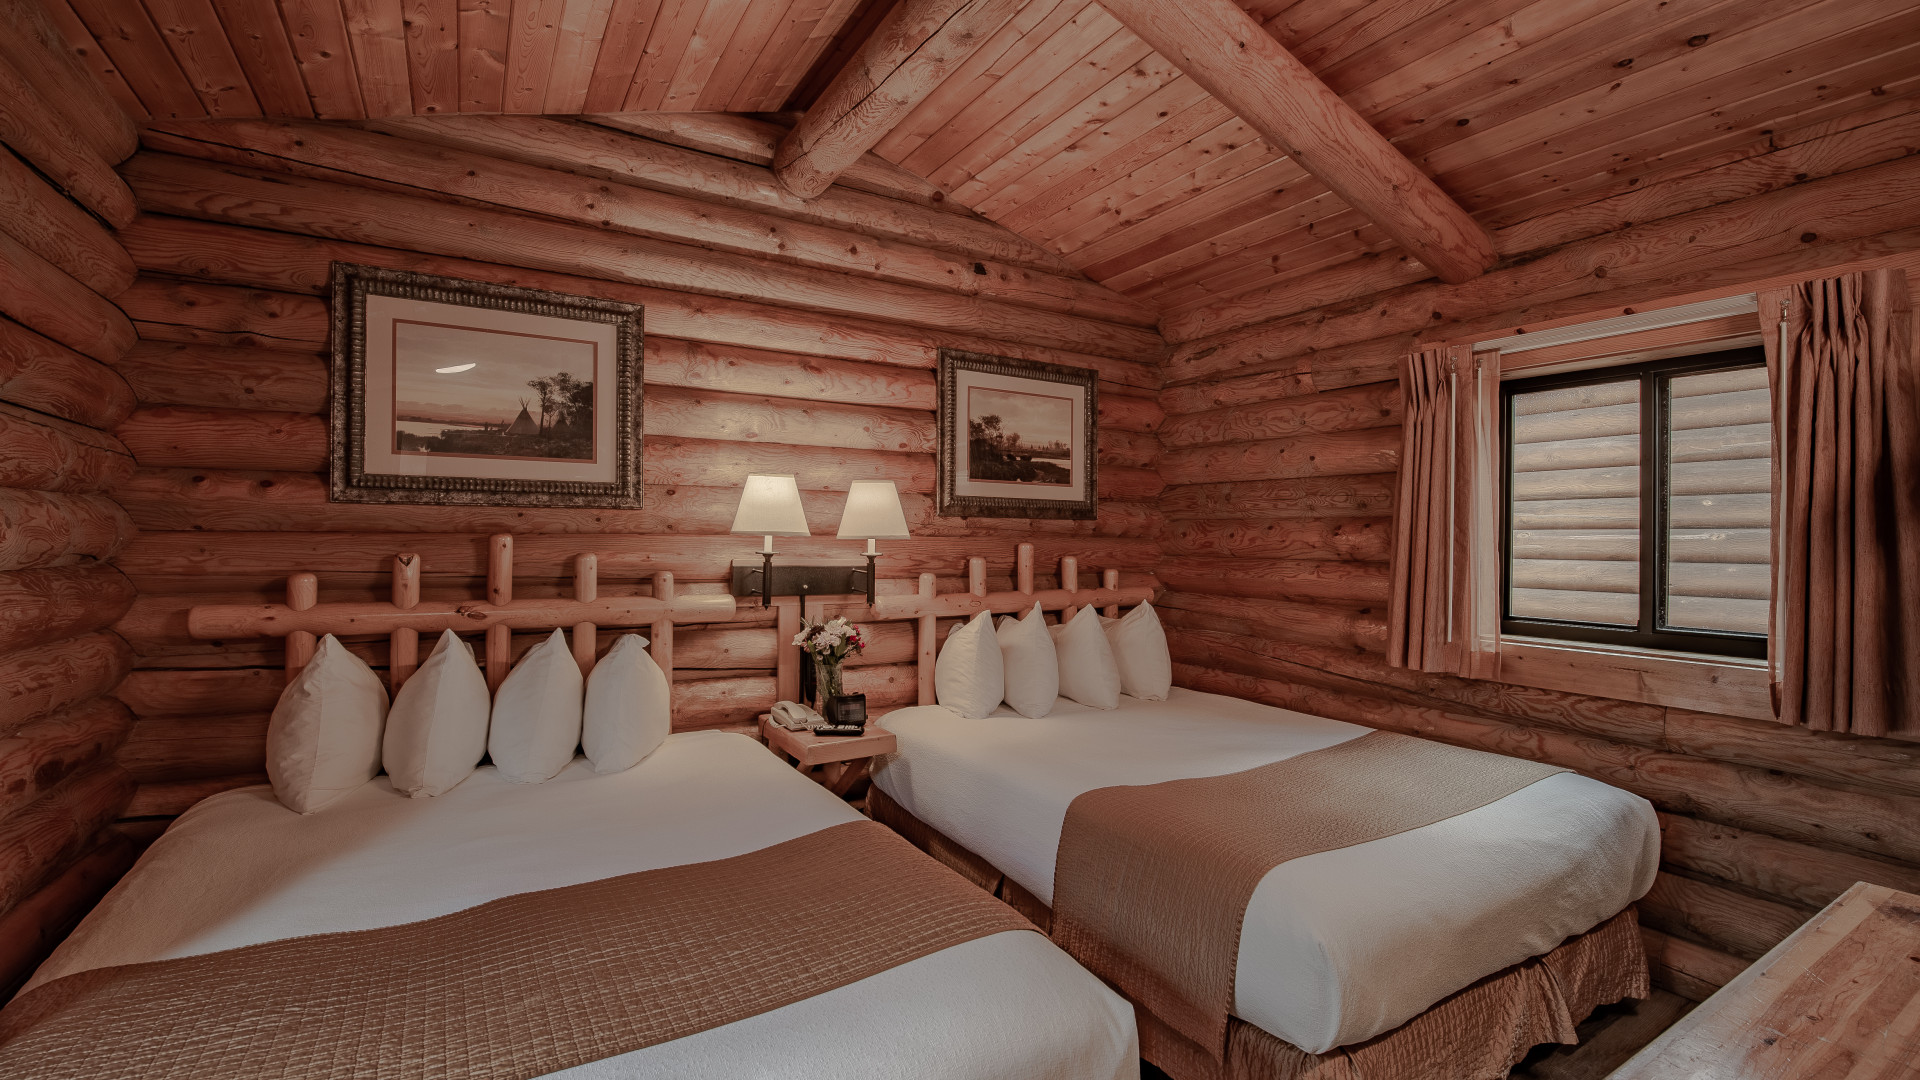 Deluxe cabin accommodations.